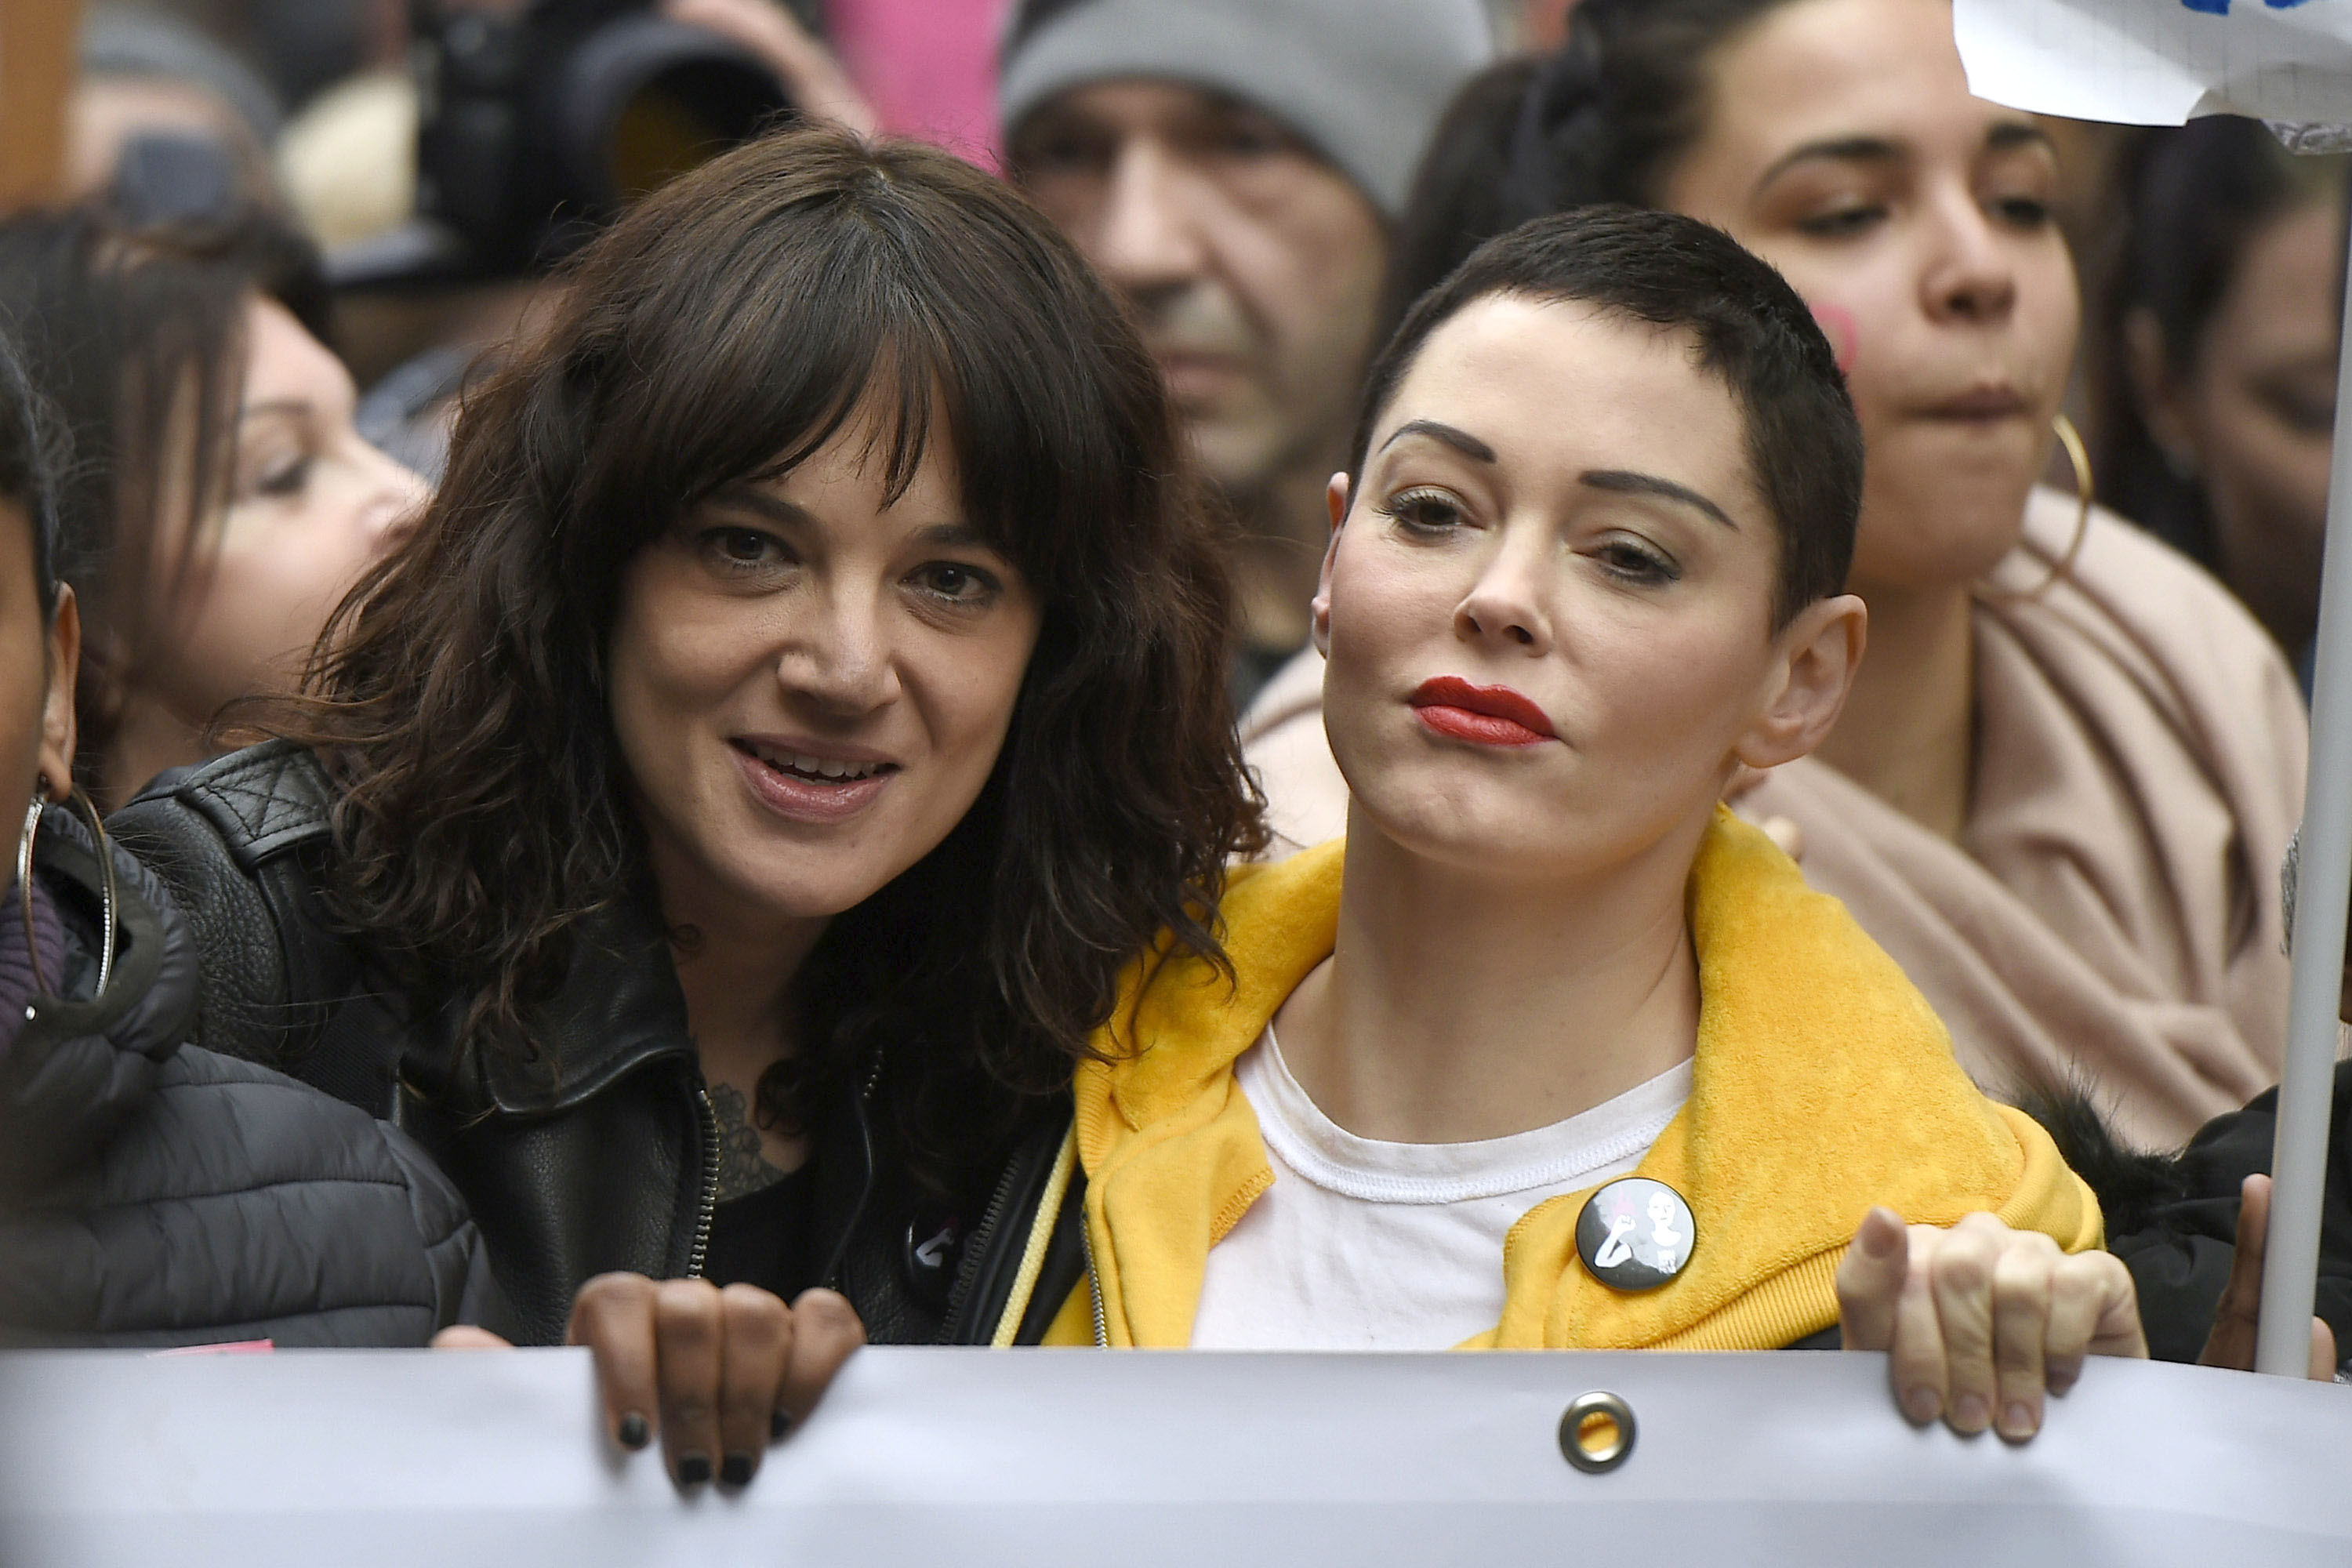 Asia Argento and Rose McGowan participate in a parade on International Women's Day in Rome, Italy. When: 08 Mar 2018 Credit: IPA/WENN.com